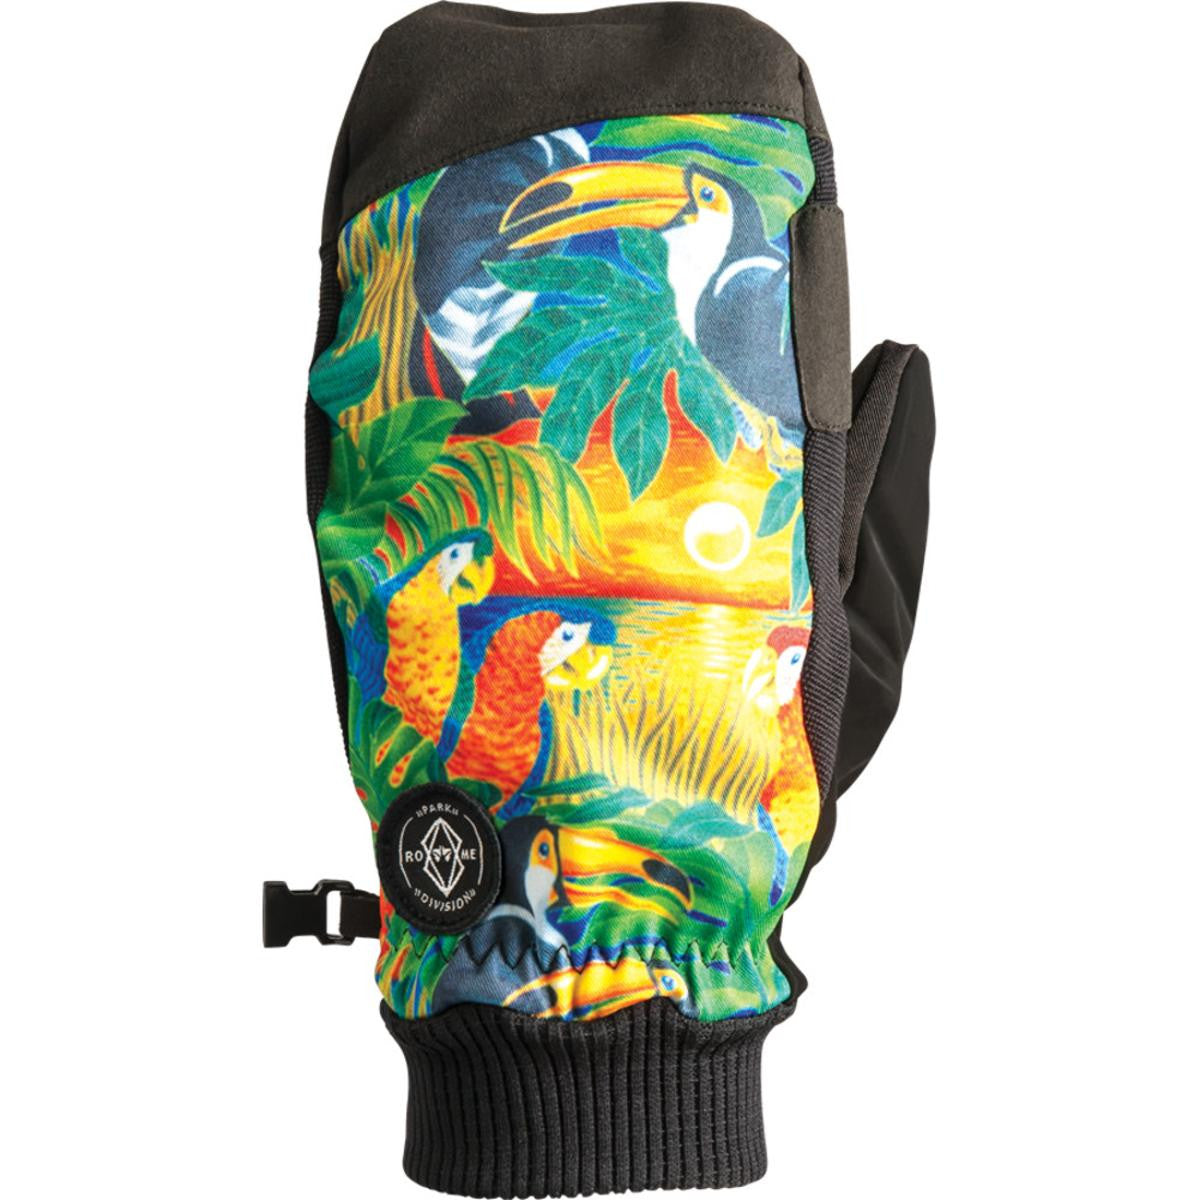 Rome SDS Margaritaville Mitten Men's Tropical Large 2016